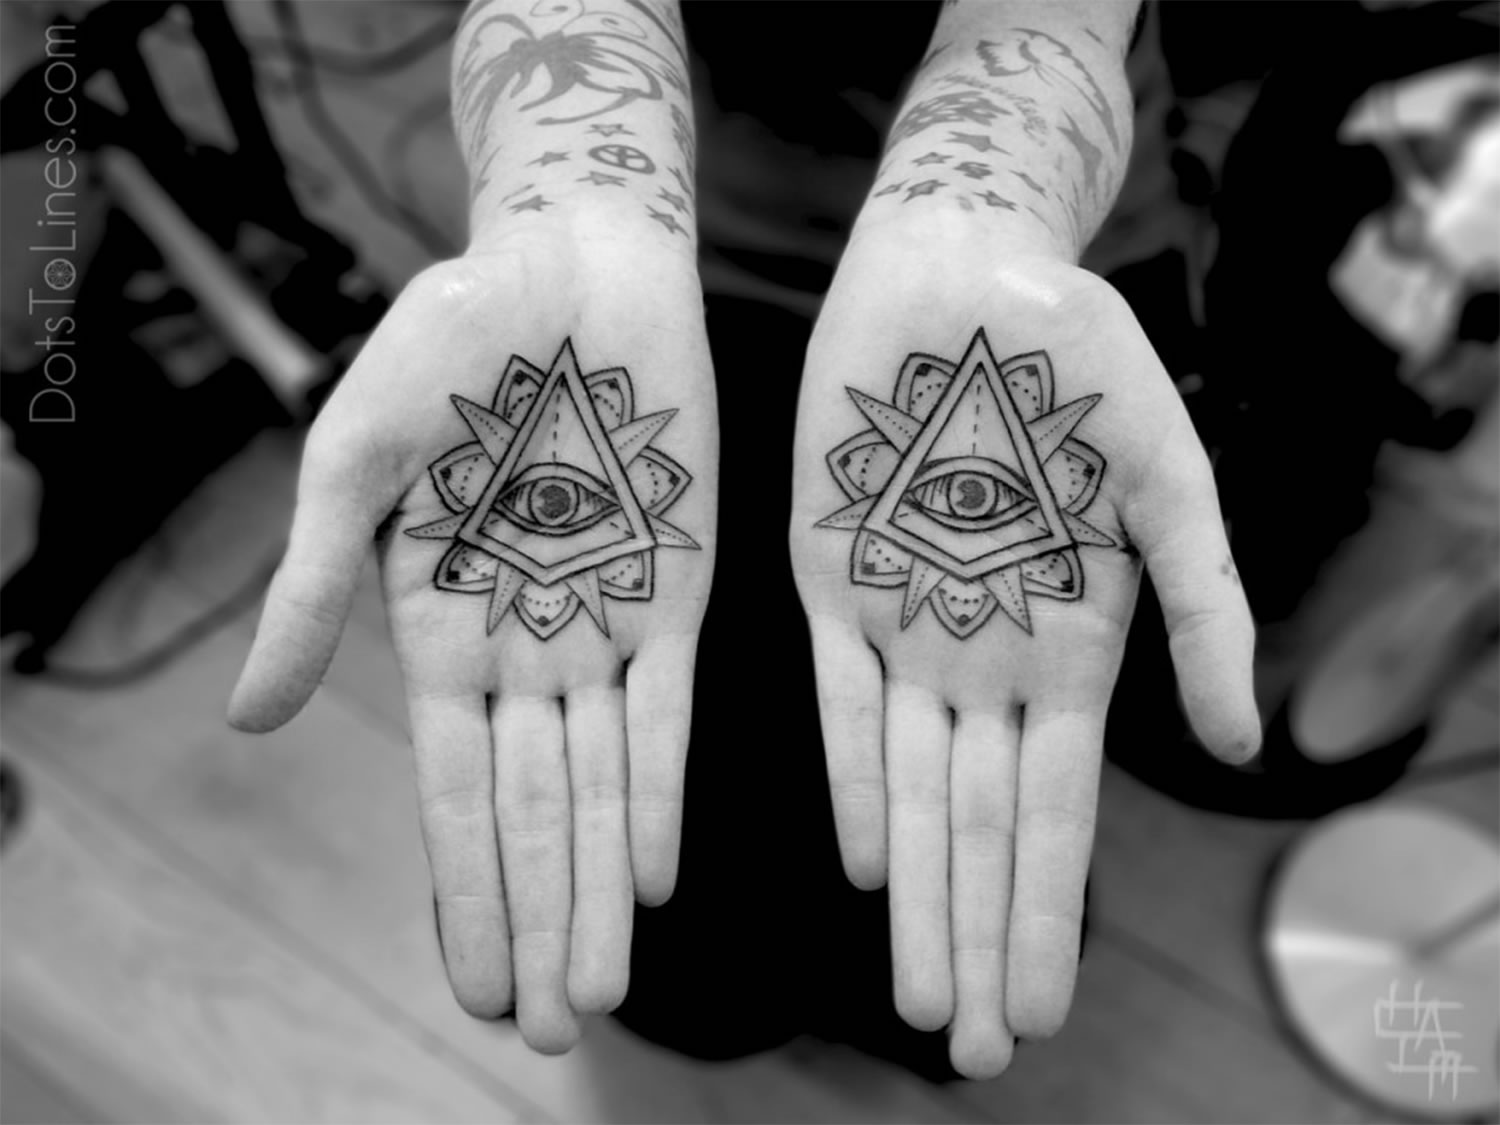 eye of providence on hand palms, by chaim machlev, dotstolines